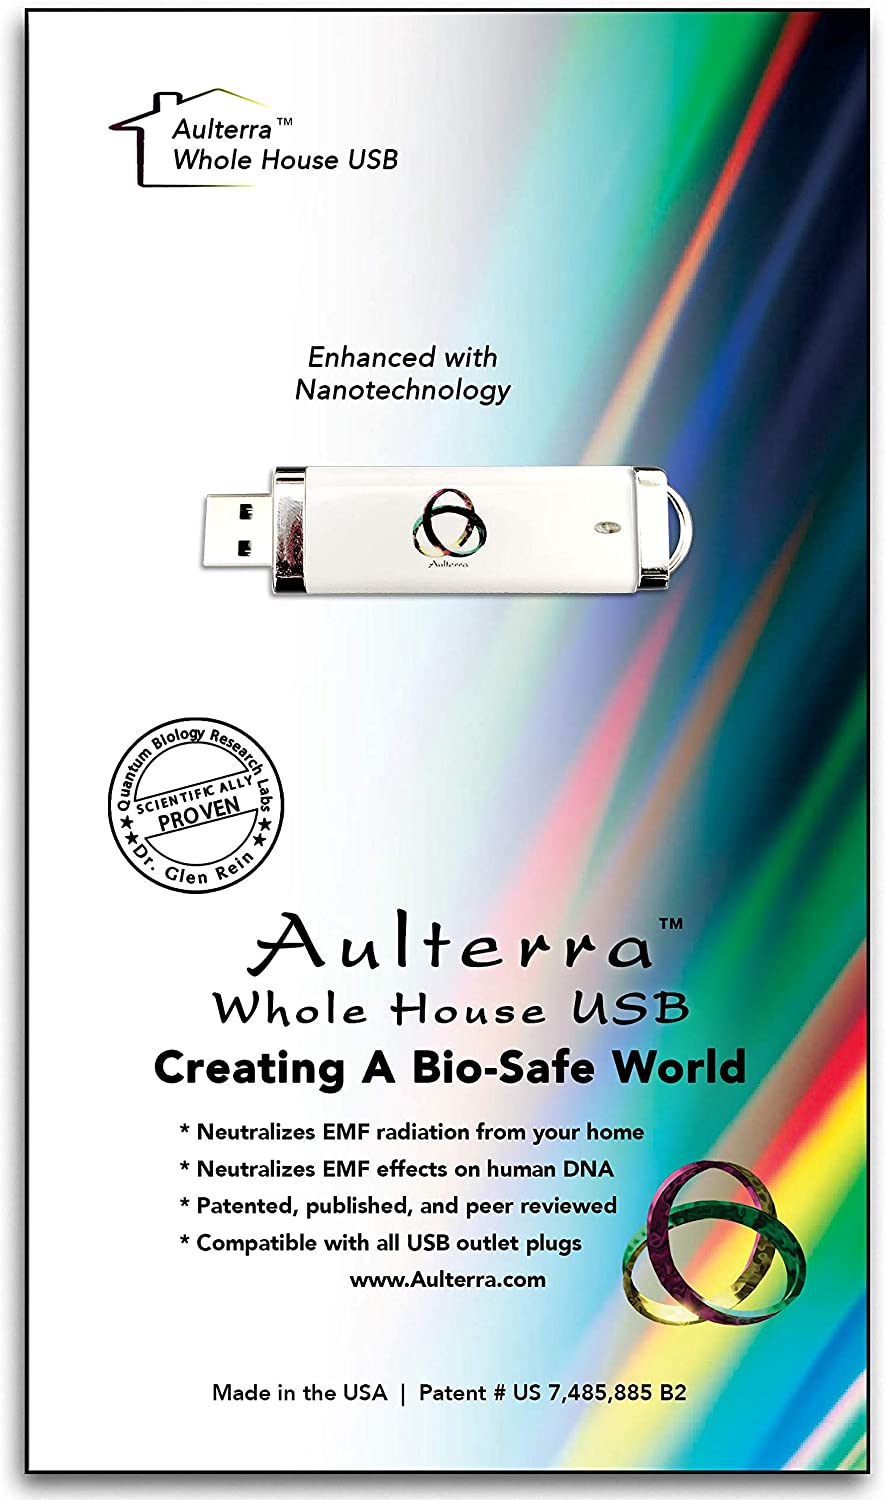 Aulterra EMF Home Protection Anti Radiation USB for Whole House Protection to Neutralize Harmful Incoherent EMF Frequencies Including 5G